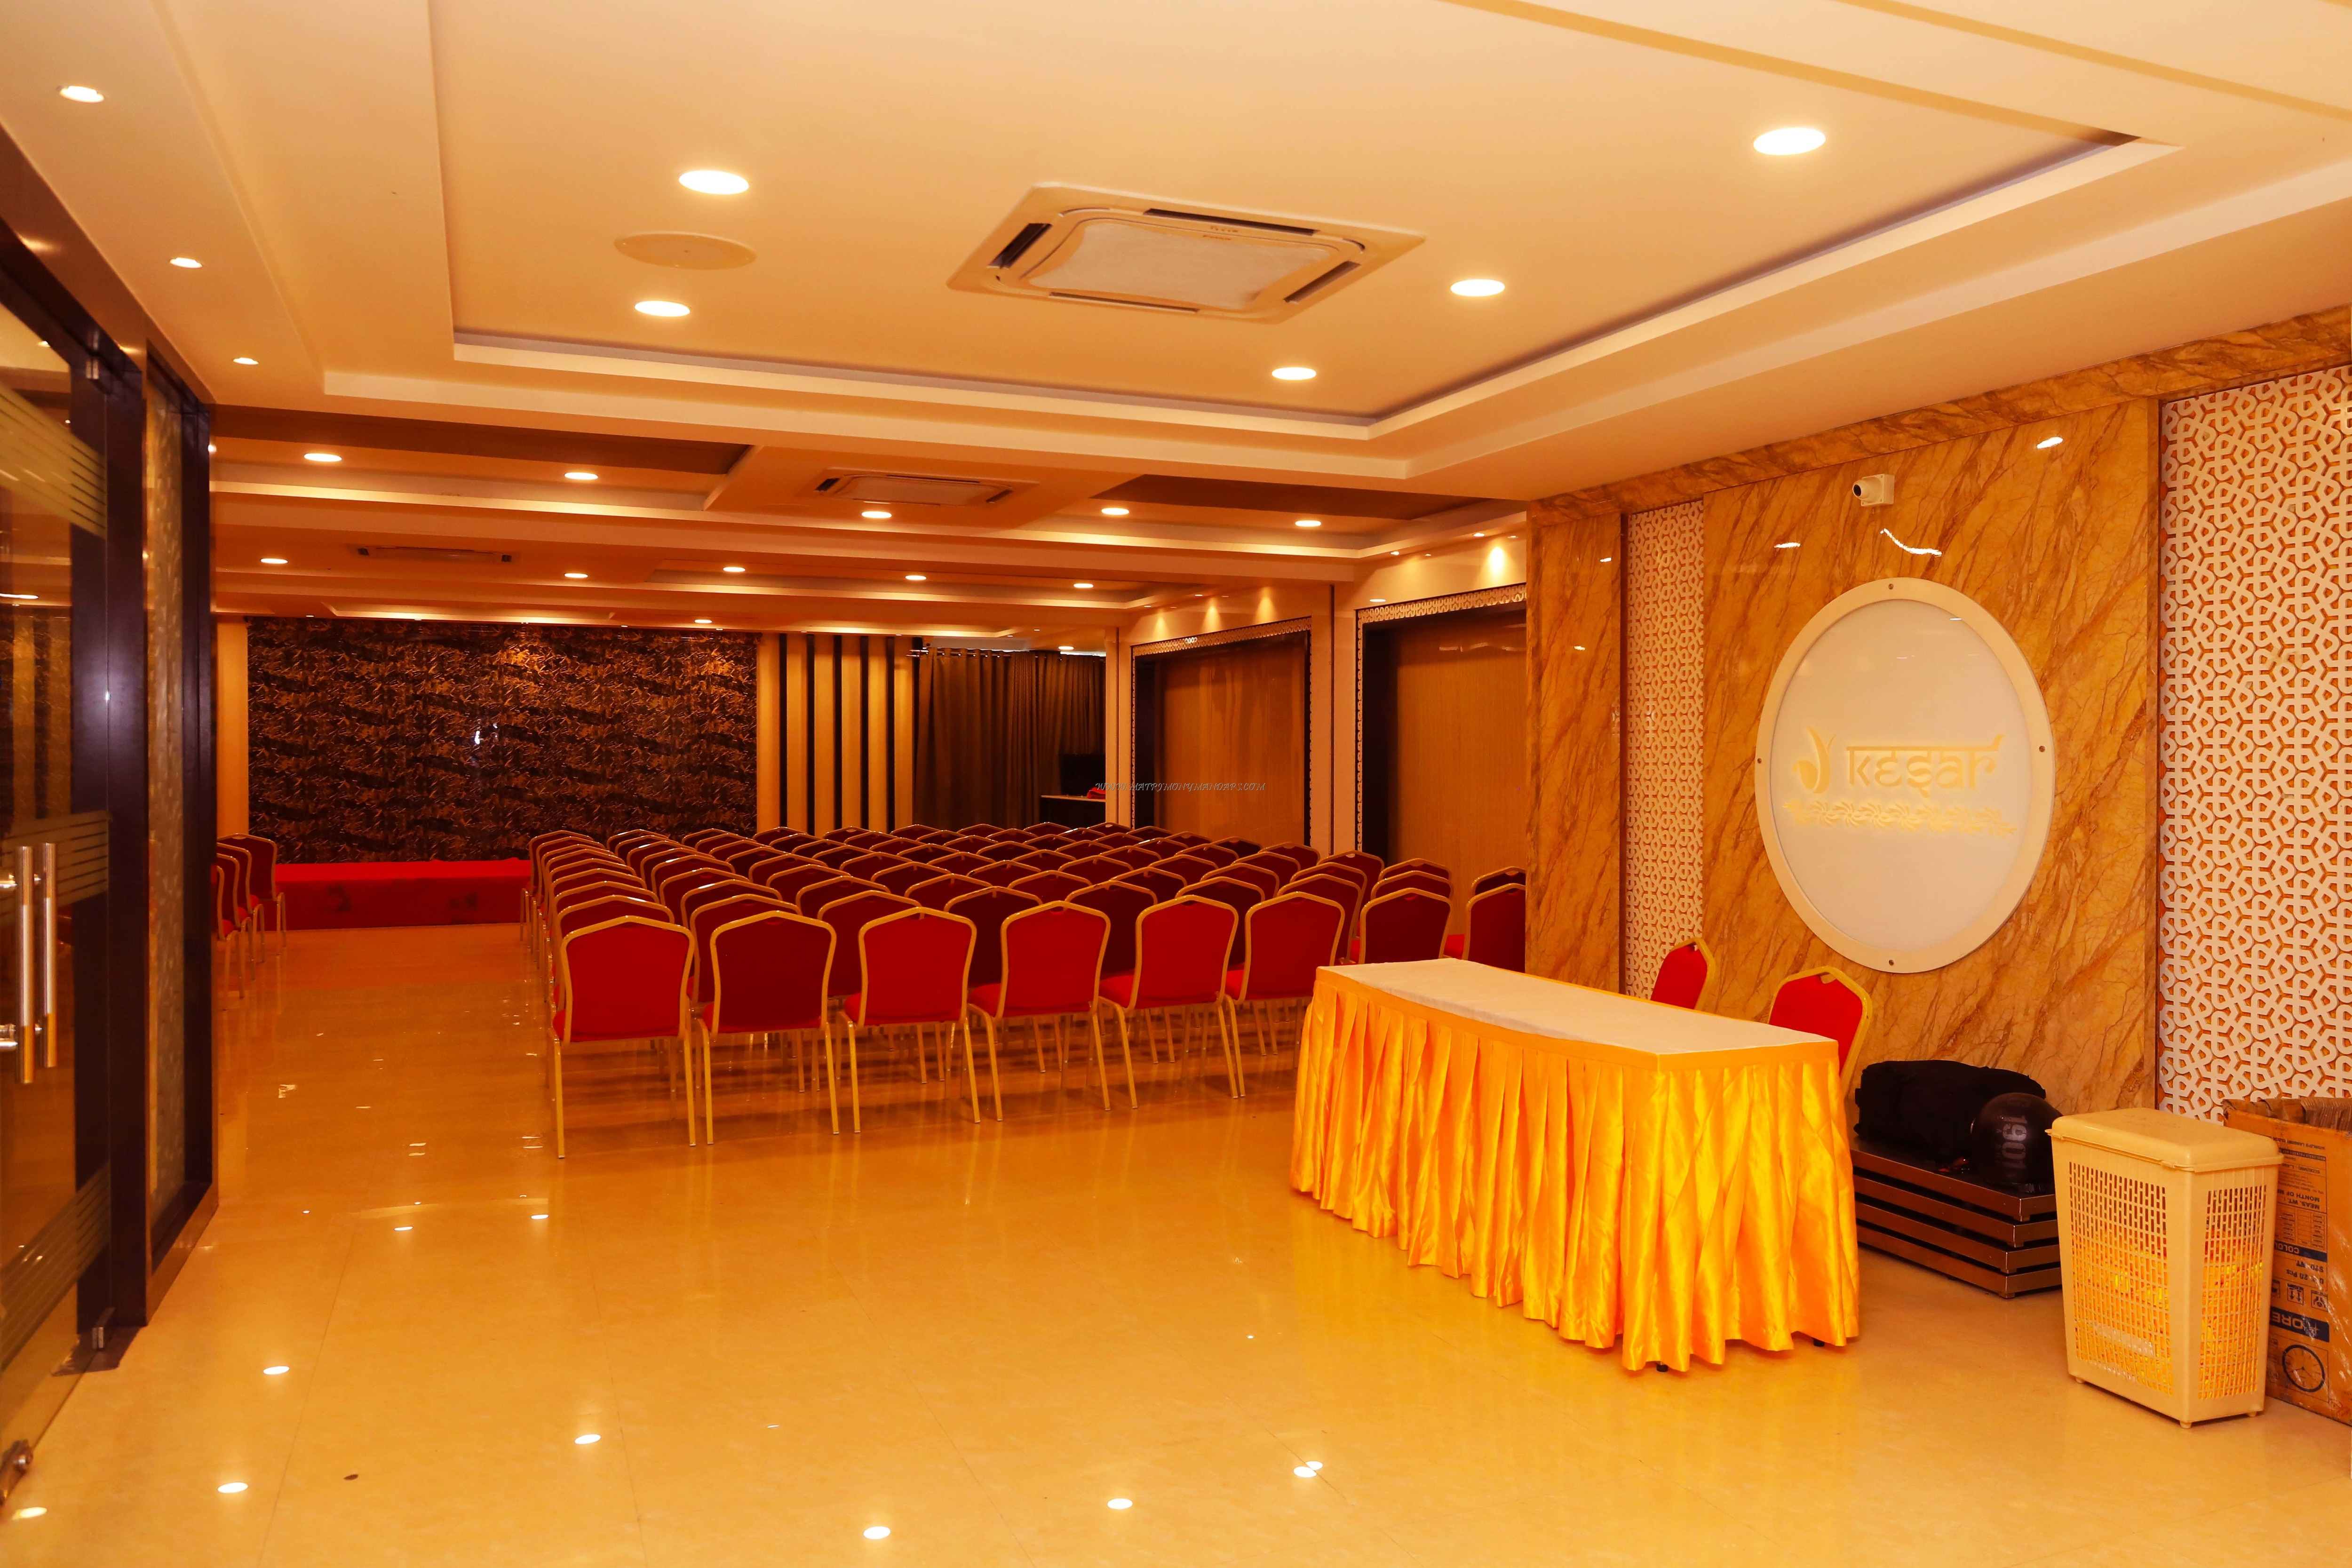 Find the availability of the Kesar Banquet Hall (A/C) in Royapettah, Chennai and avail special offers